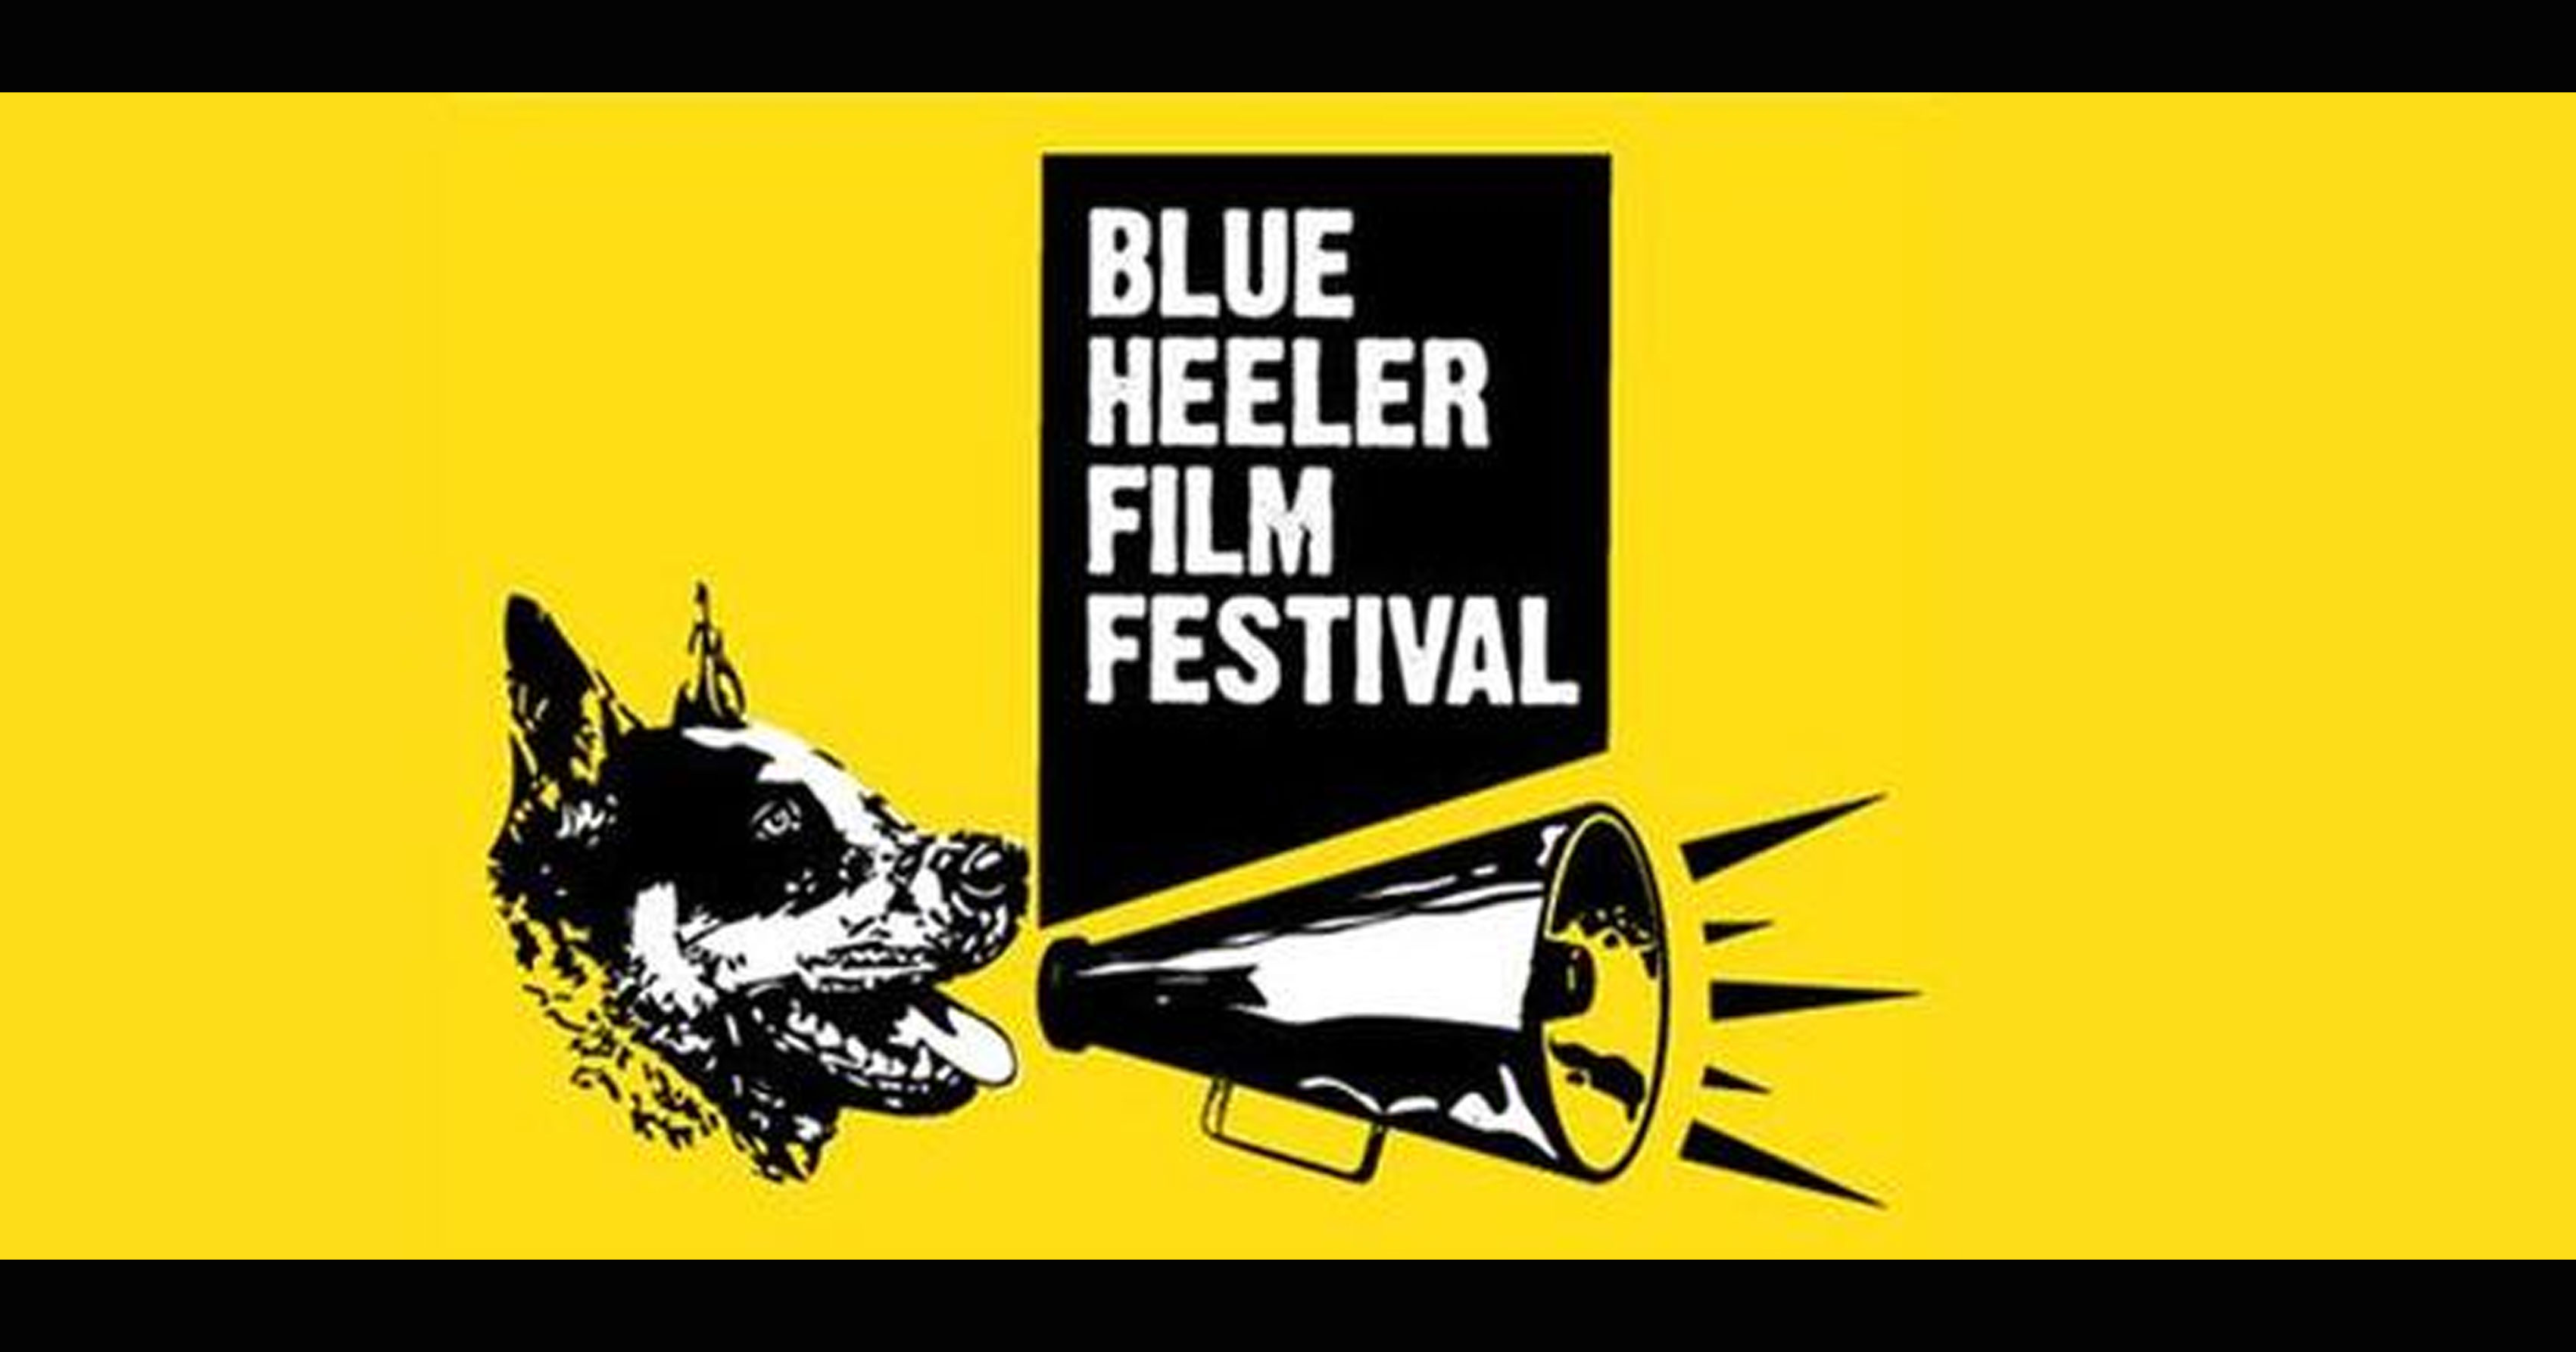 BLUE HEELER FILM FESTIVAL - Upper Hunter Festivals and Events.